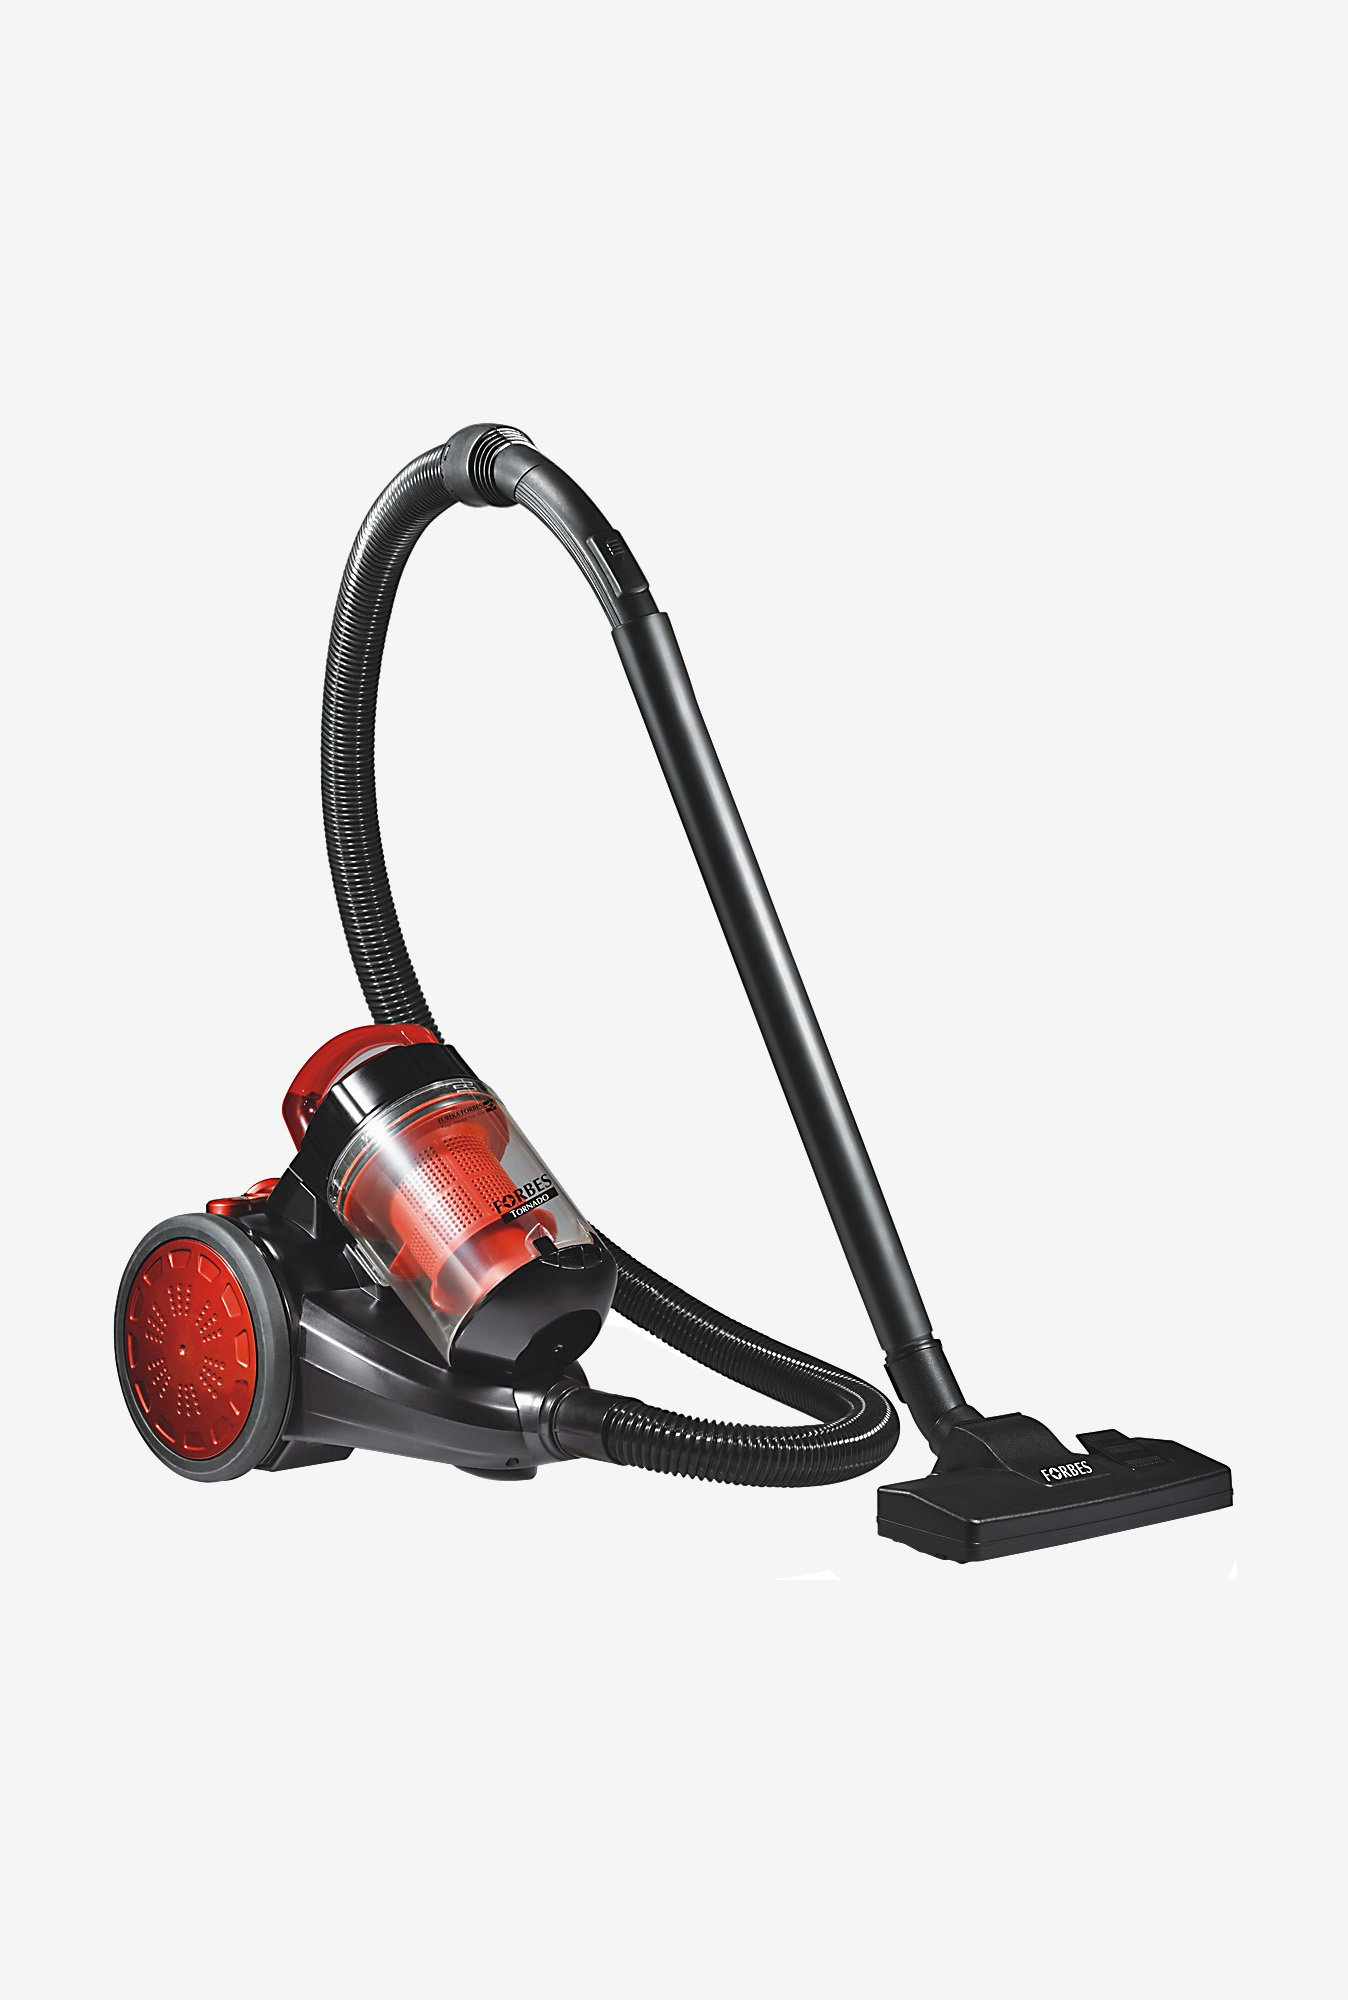 Eureka Forbes Trendy Tornado Bagless Vacuum Cleaner Blk/Red